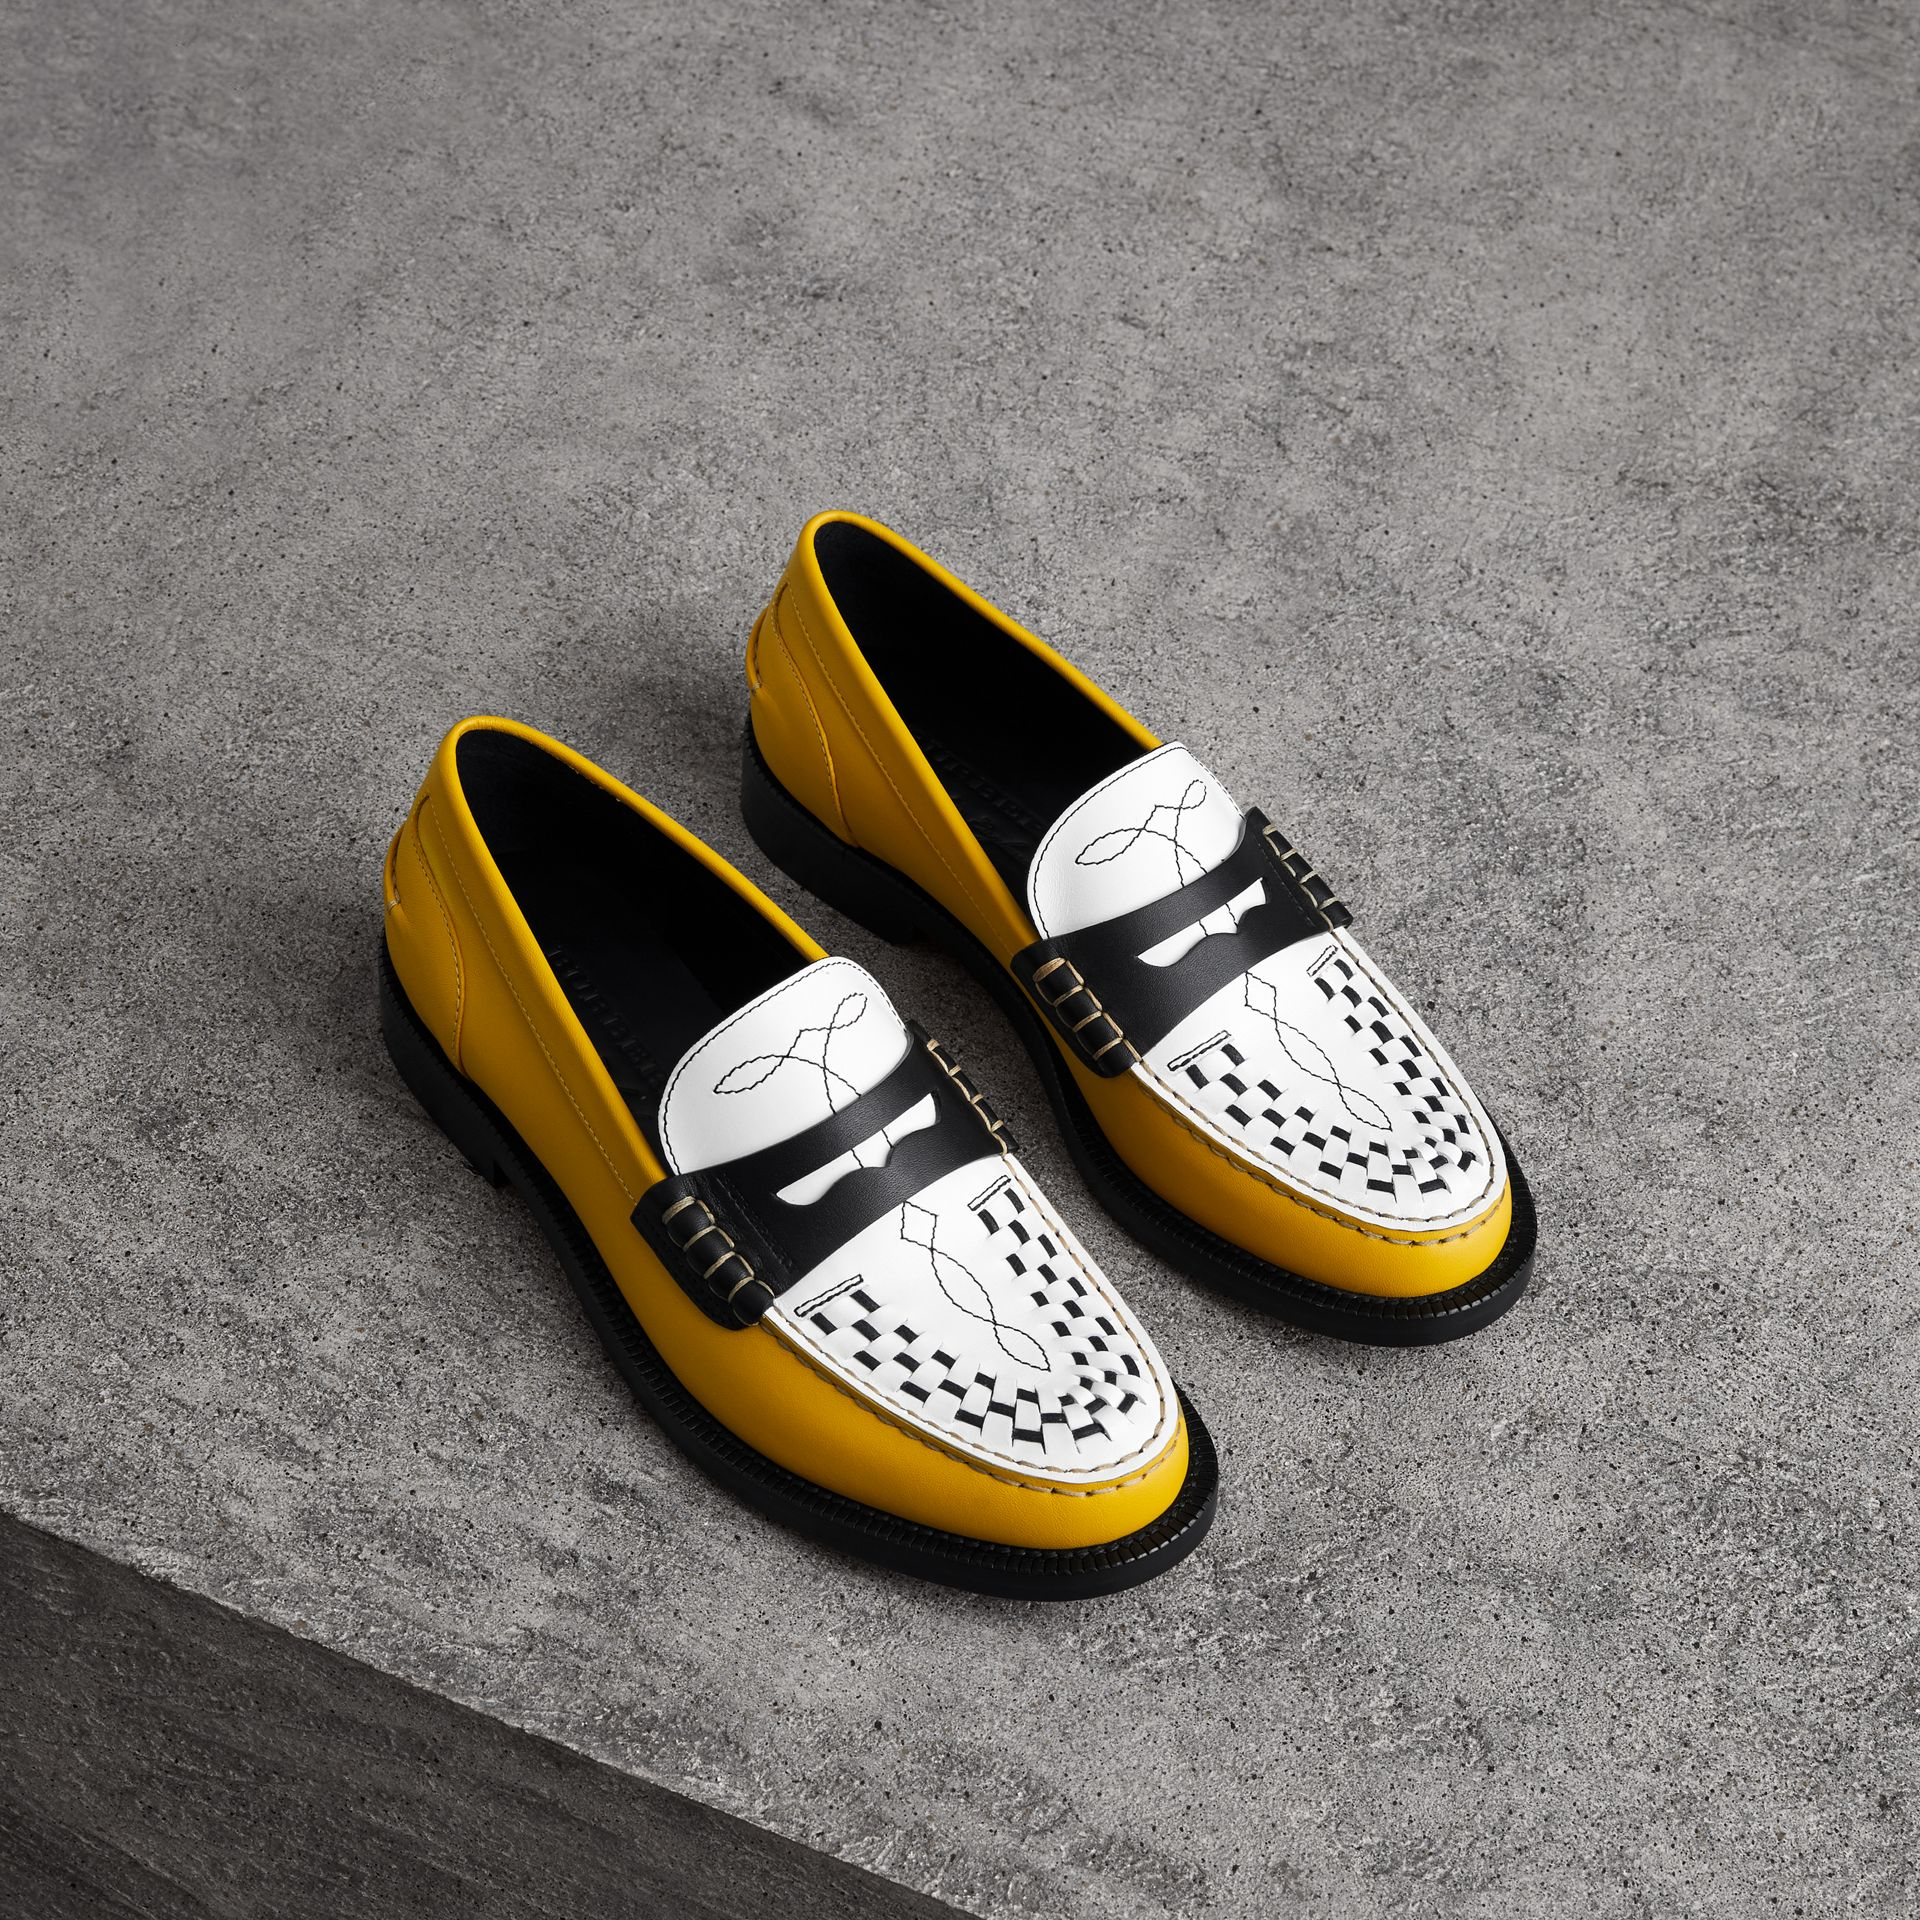 Woven-toe Leather Loafers in Saffron Yellow - Women | Burberry - gallery image 0